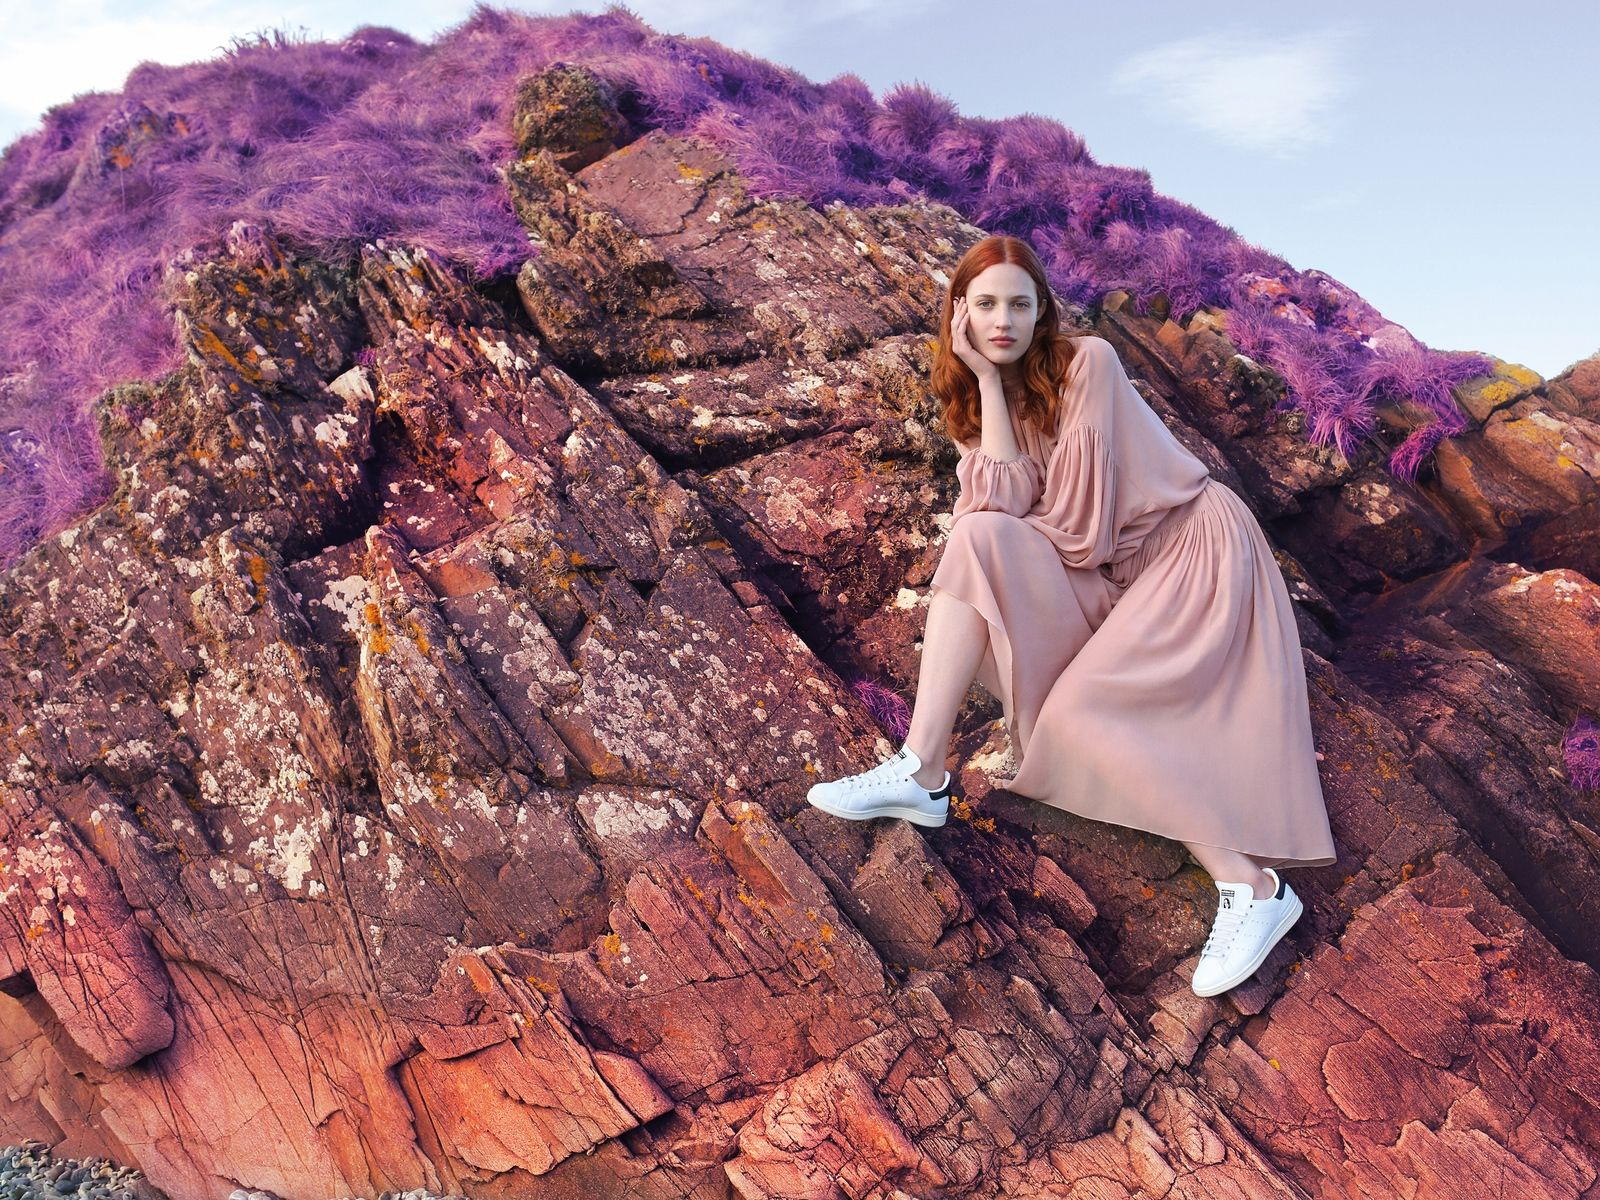 Stella #stansmith adidas offer a distinctly Stella take on the iconic adidas Stan Smith sneakers, crafted from vegetarian leather for the very first time. Stella McCartney's head of